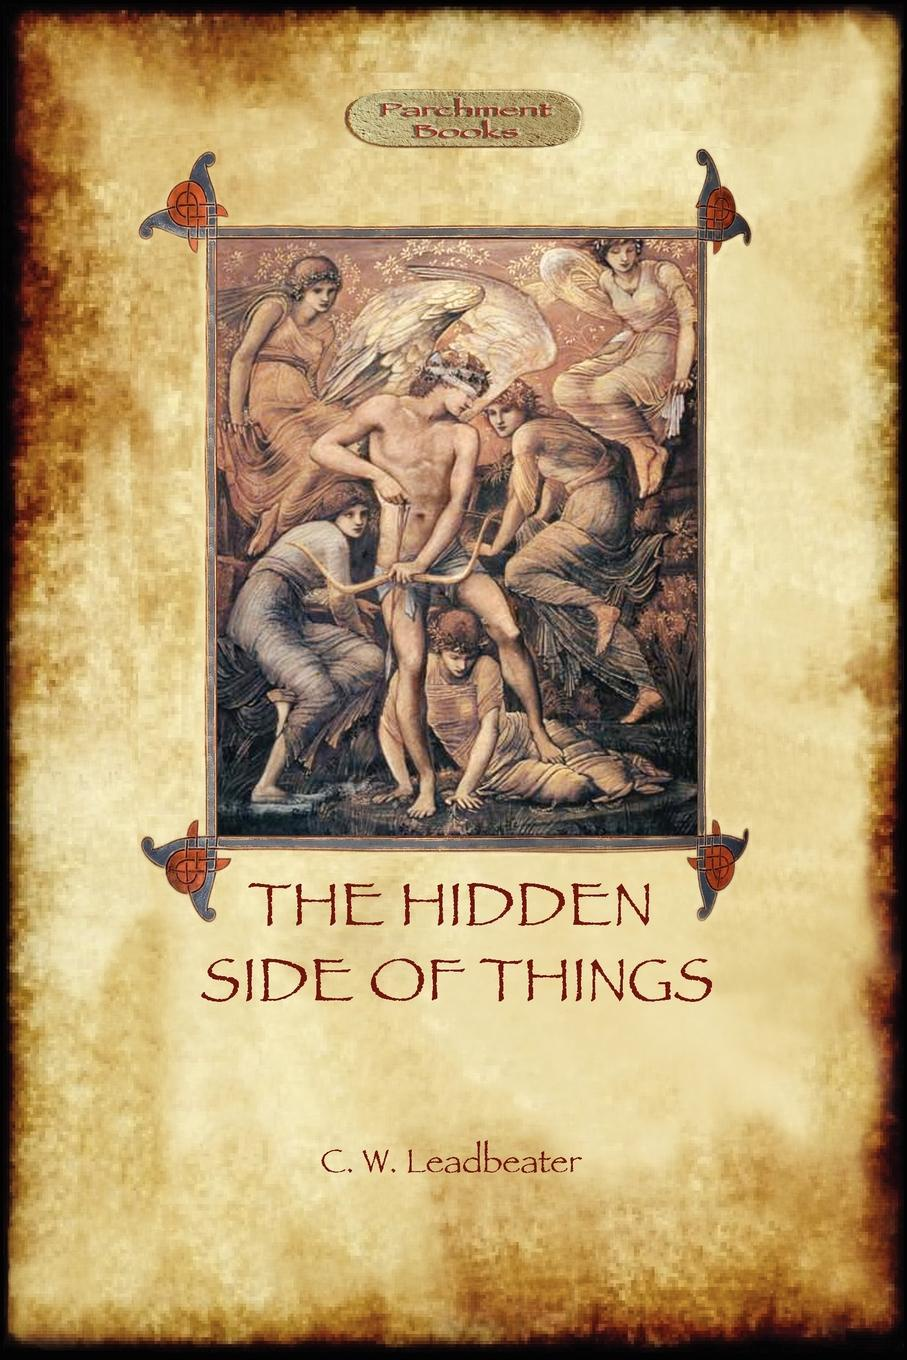 Charles Webster Leadbeater The Hidden Side of Things - Vols. I & II charles webster leadbeater secrets revealed clairvoyance magic and the reality of spirits